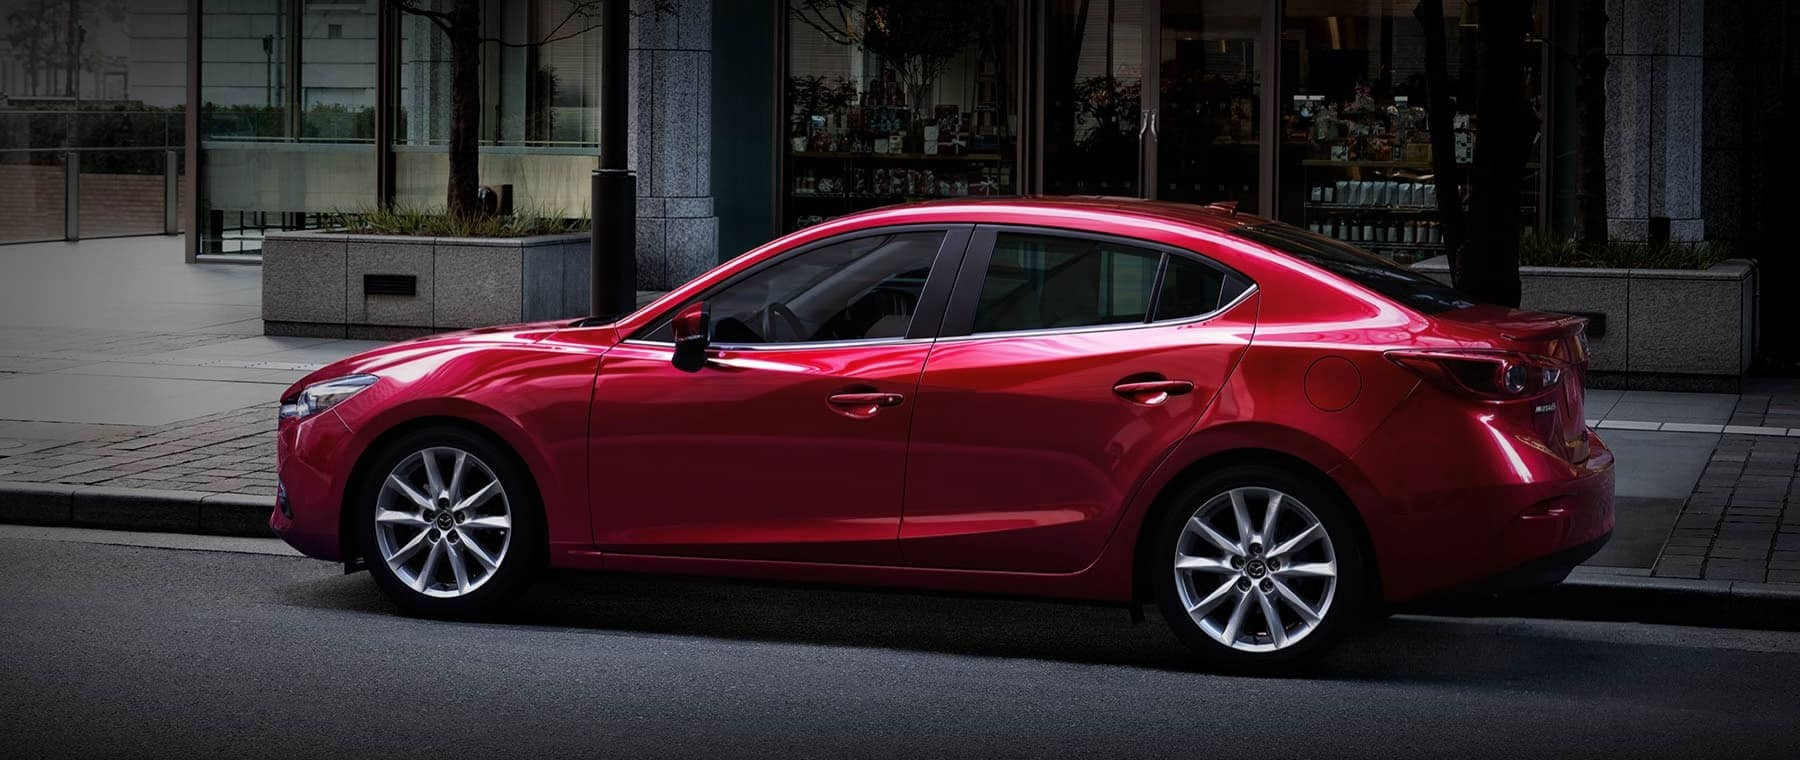 Spreen Mazda Mazda Dealer In Loma Linda CA - Mazda of redlands